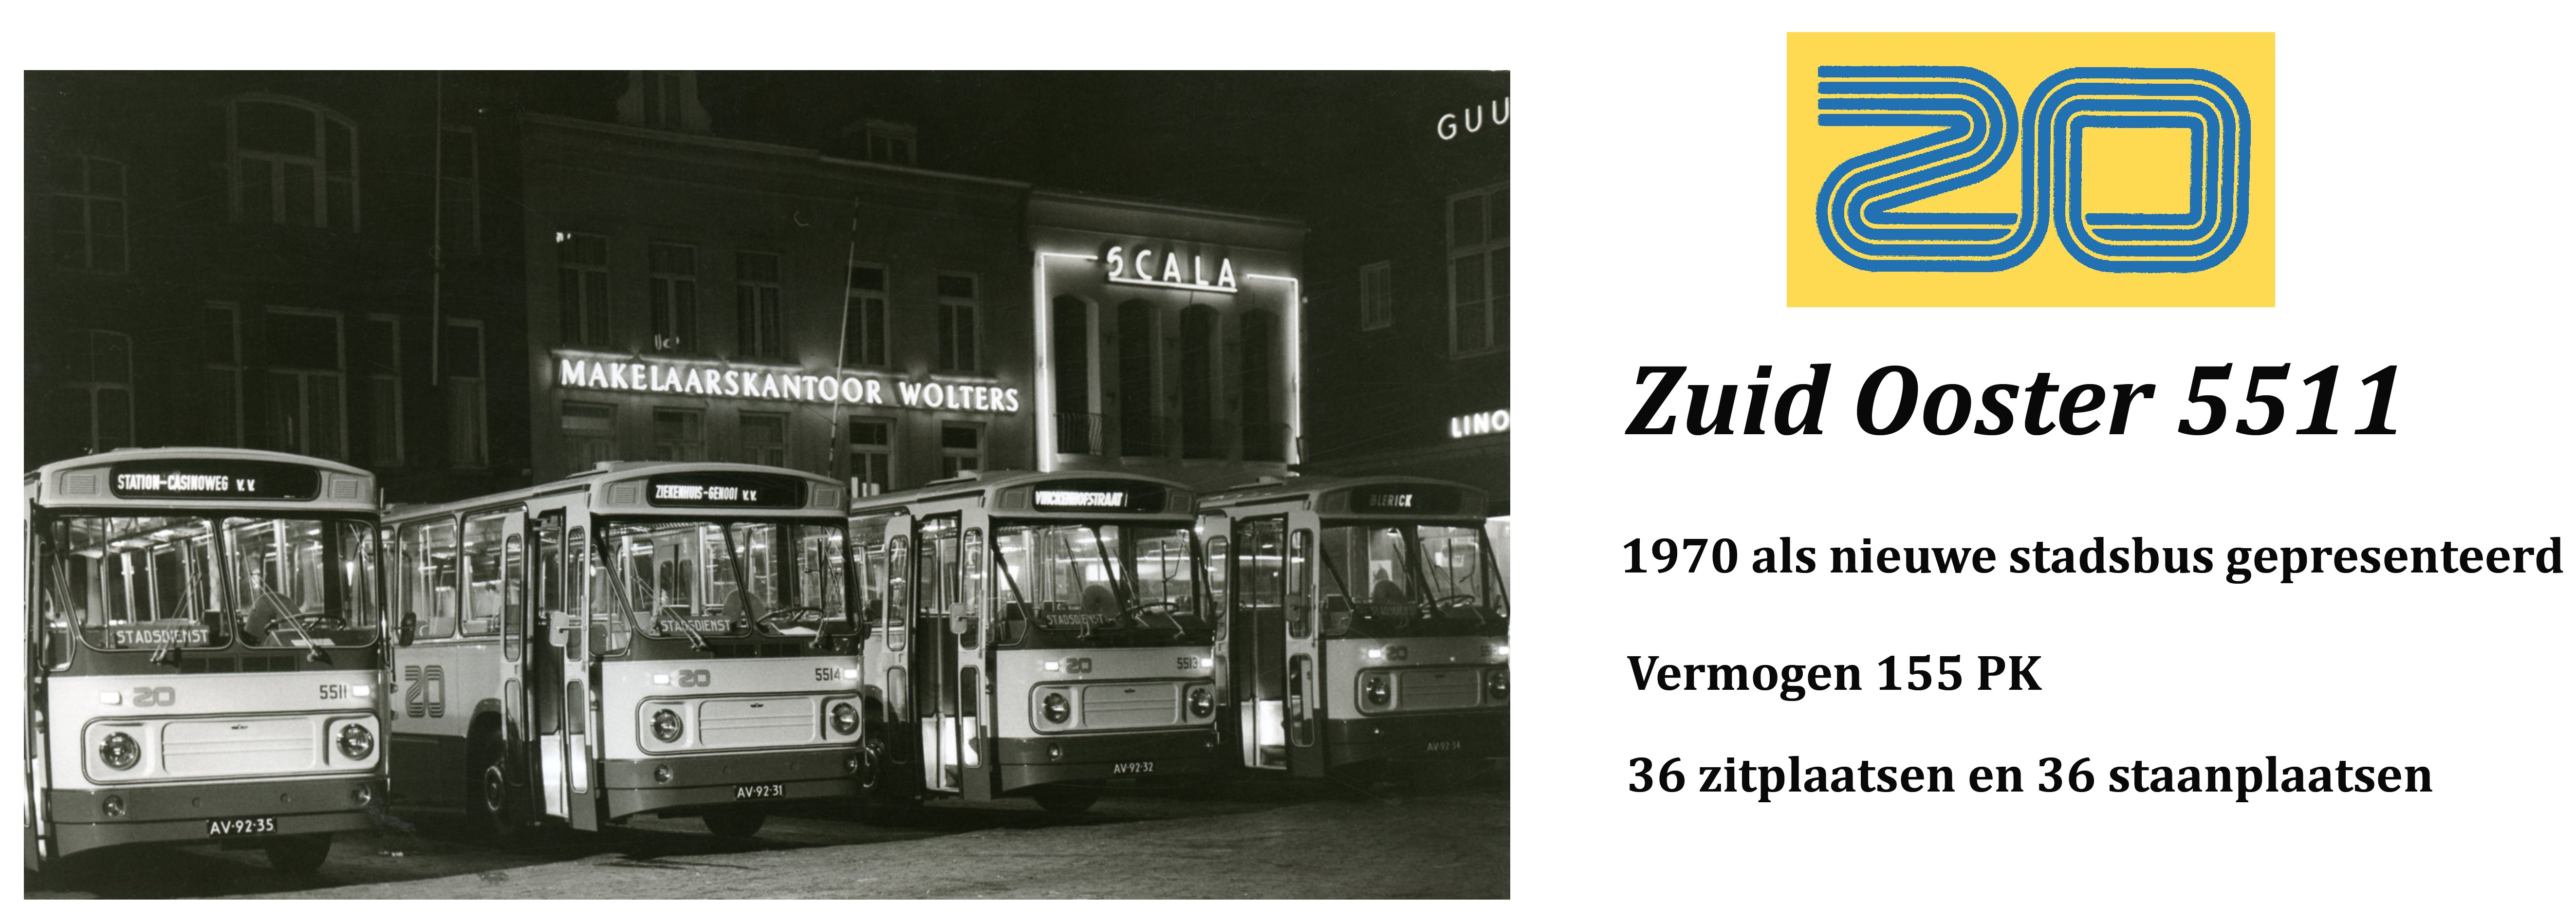 5511-Zuid-Ooster-3